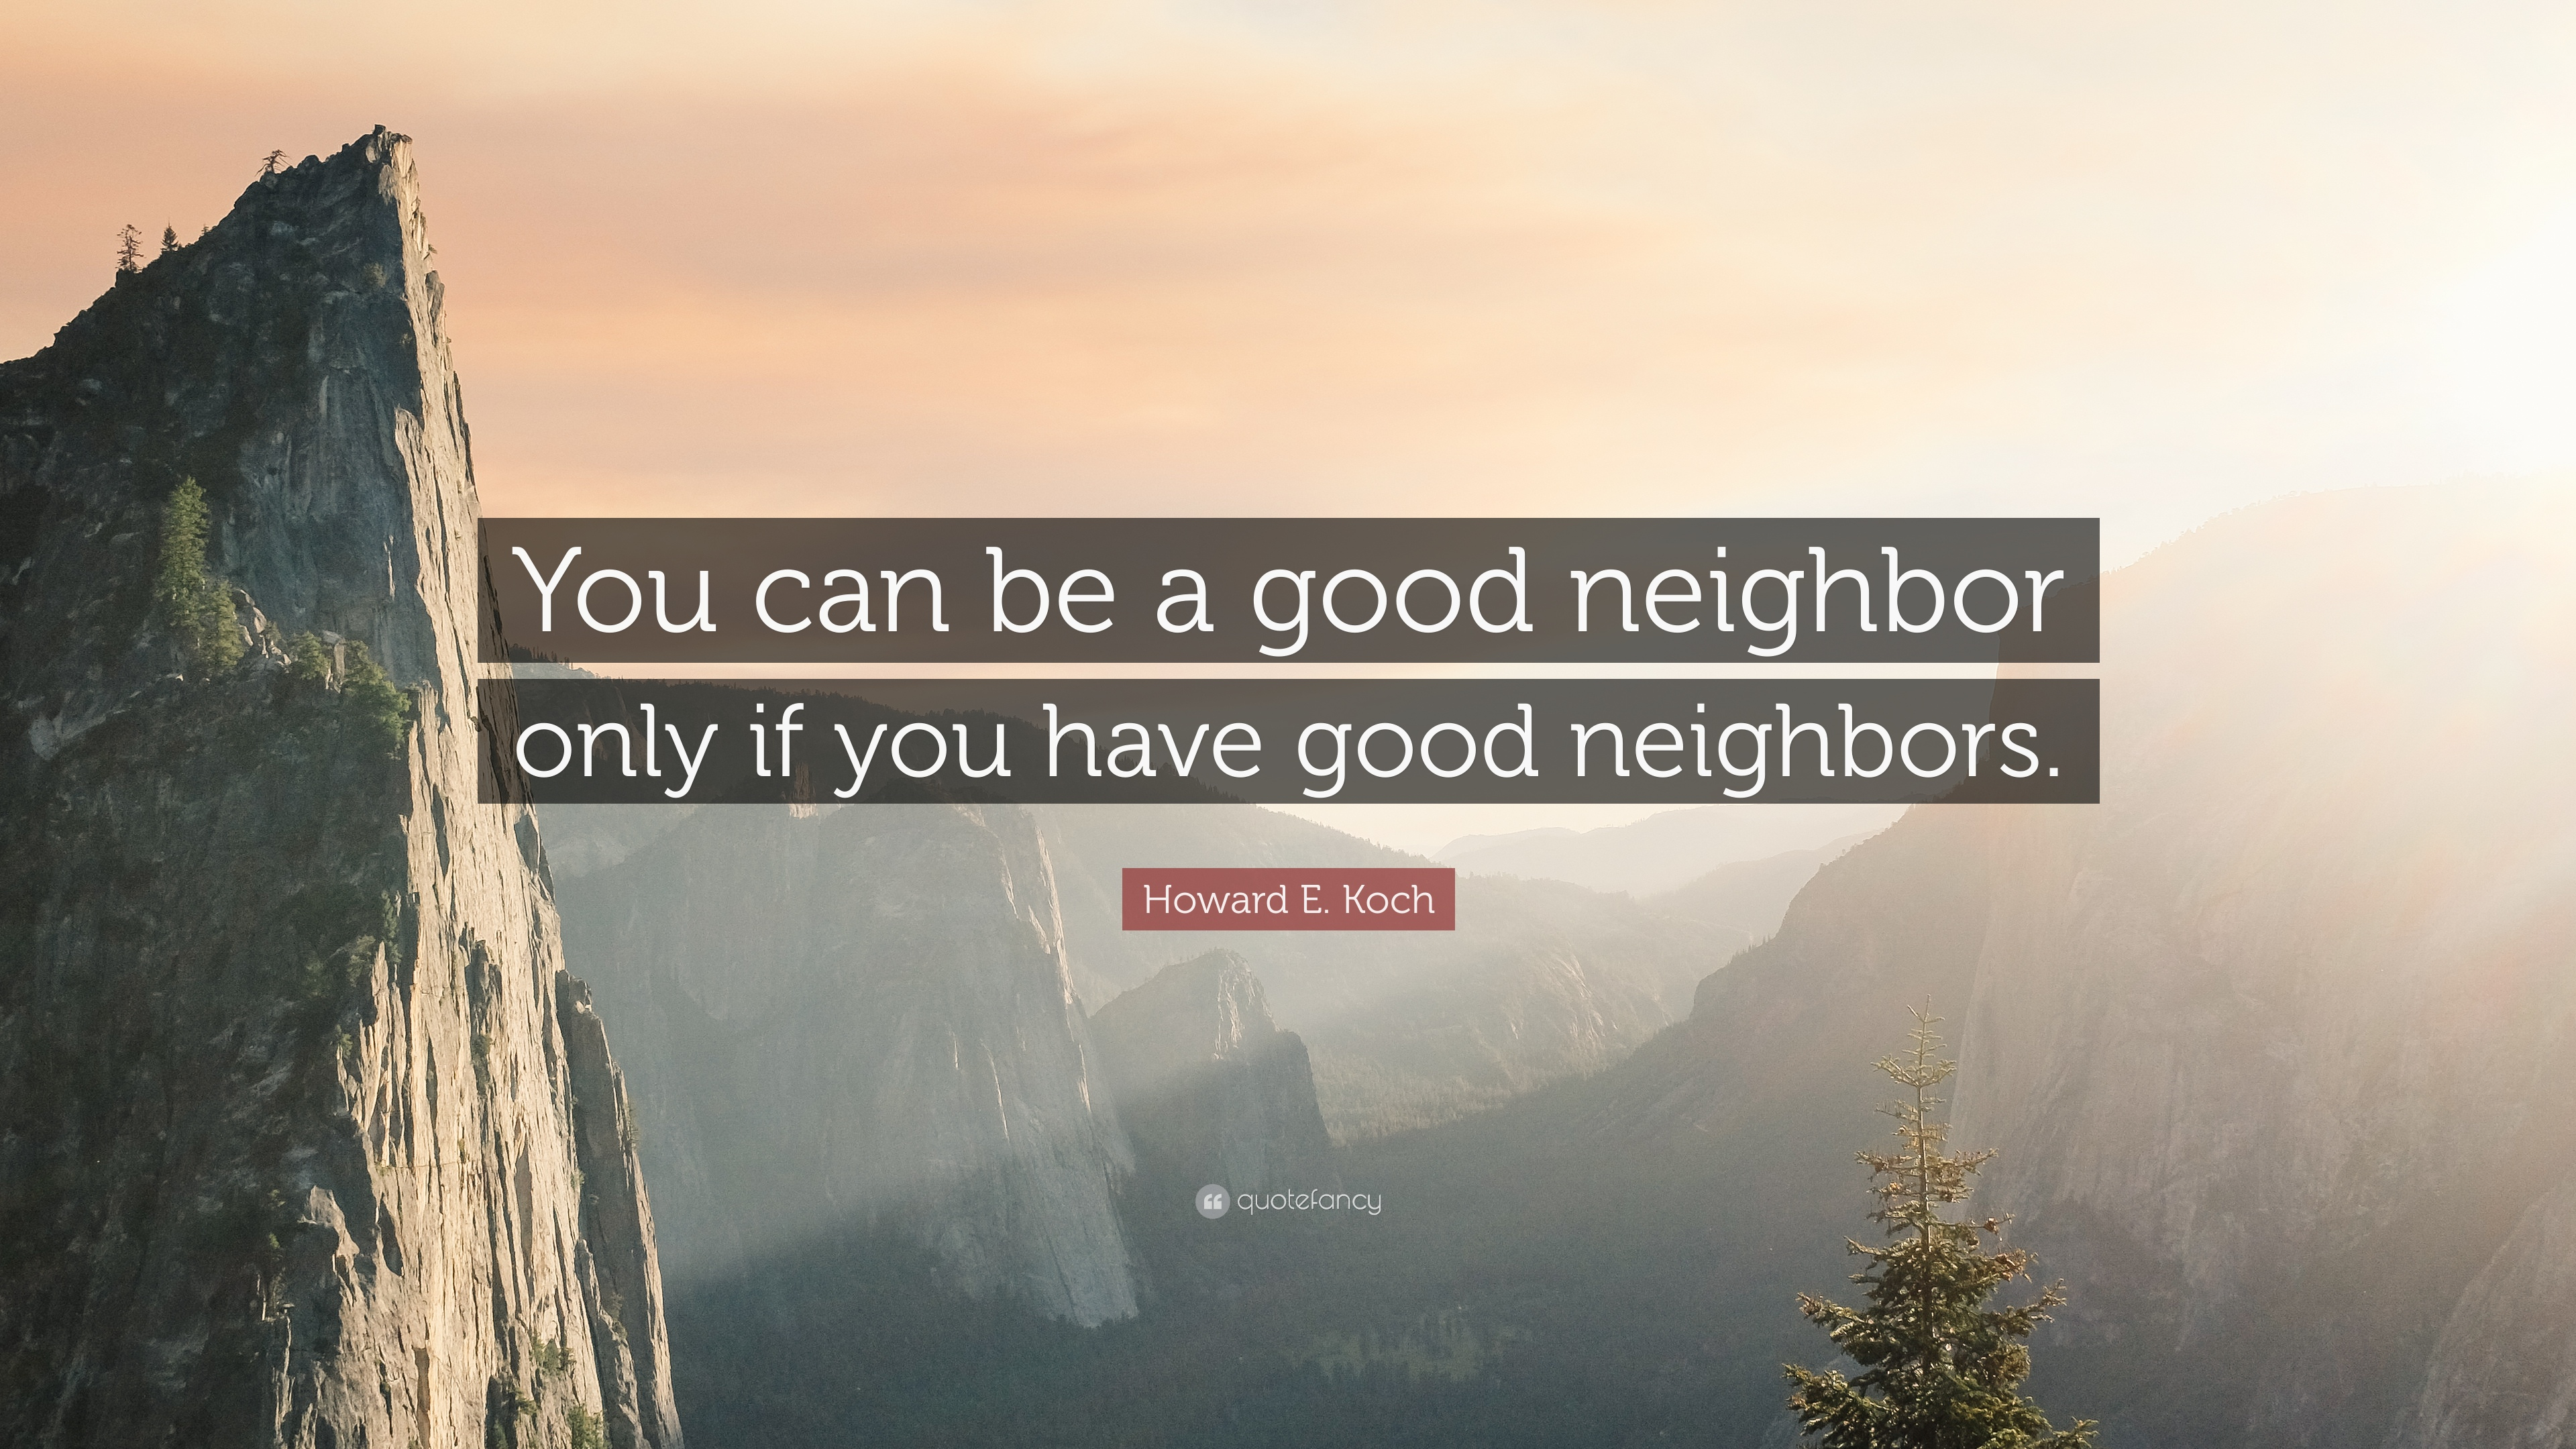 Howard E Koch Quote You Can Be A Good Neighbor Only If You Have